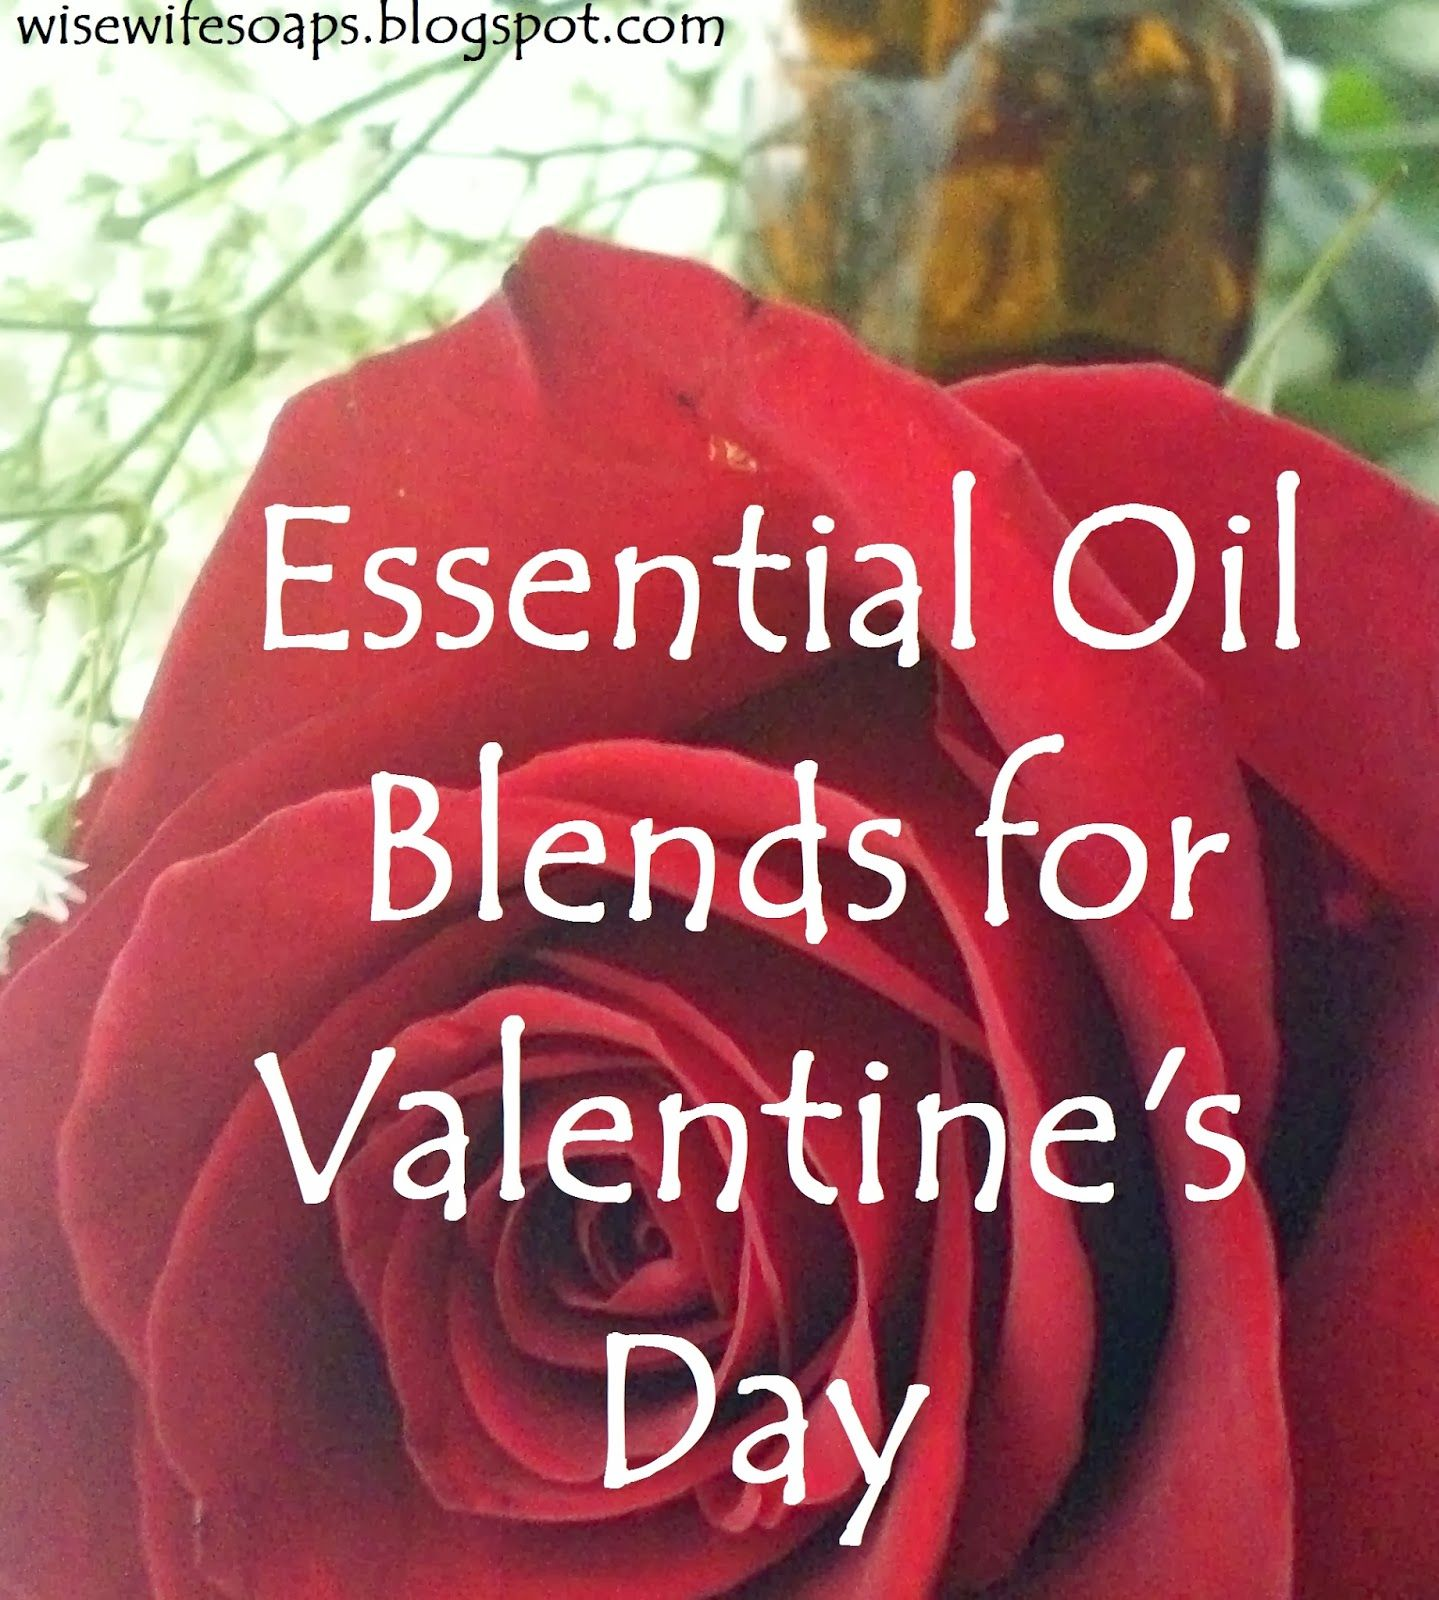 Essential Oils for Your Valentine! Three awesome essential oil blends for Valentine's day Use these essential oils to make your Valentines day extra special. | Visit SkyMall.com to help create a spa like environment at your house!